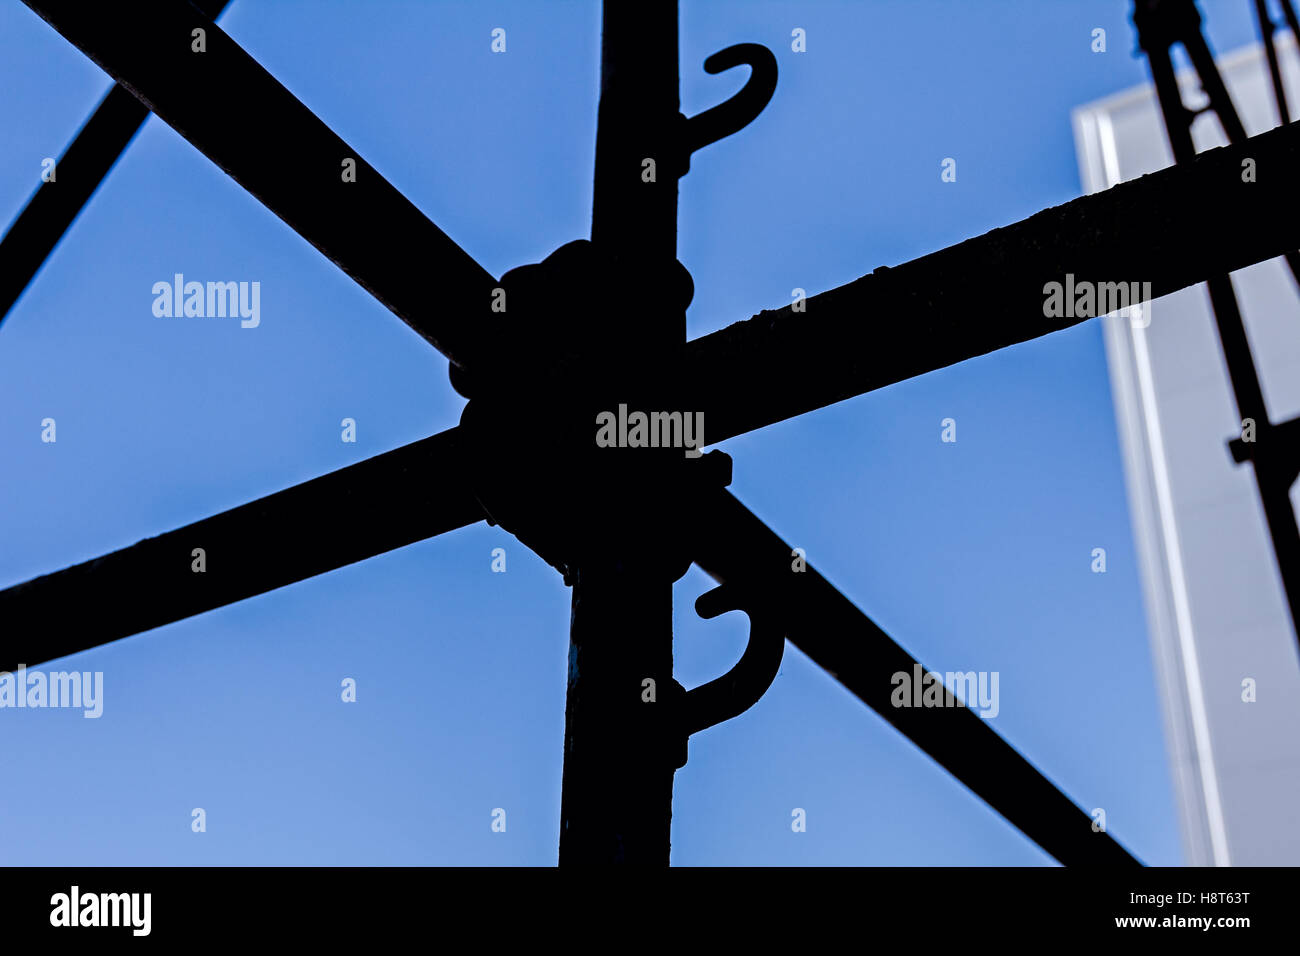 Silhouetted industrial shot node of scaffold against blue sky. - Stock Image